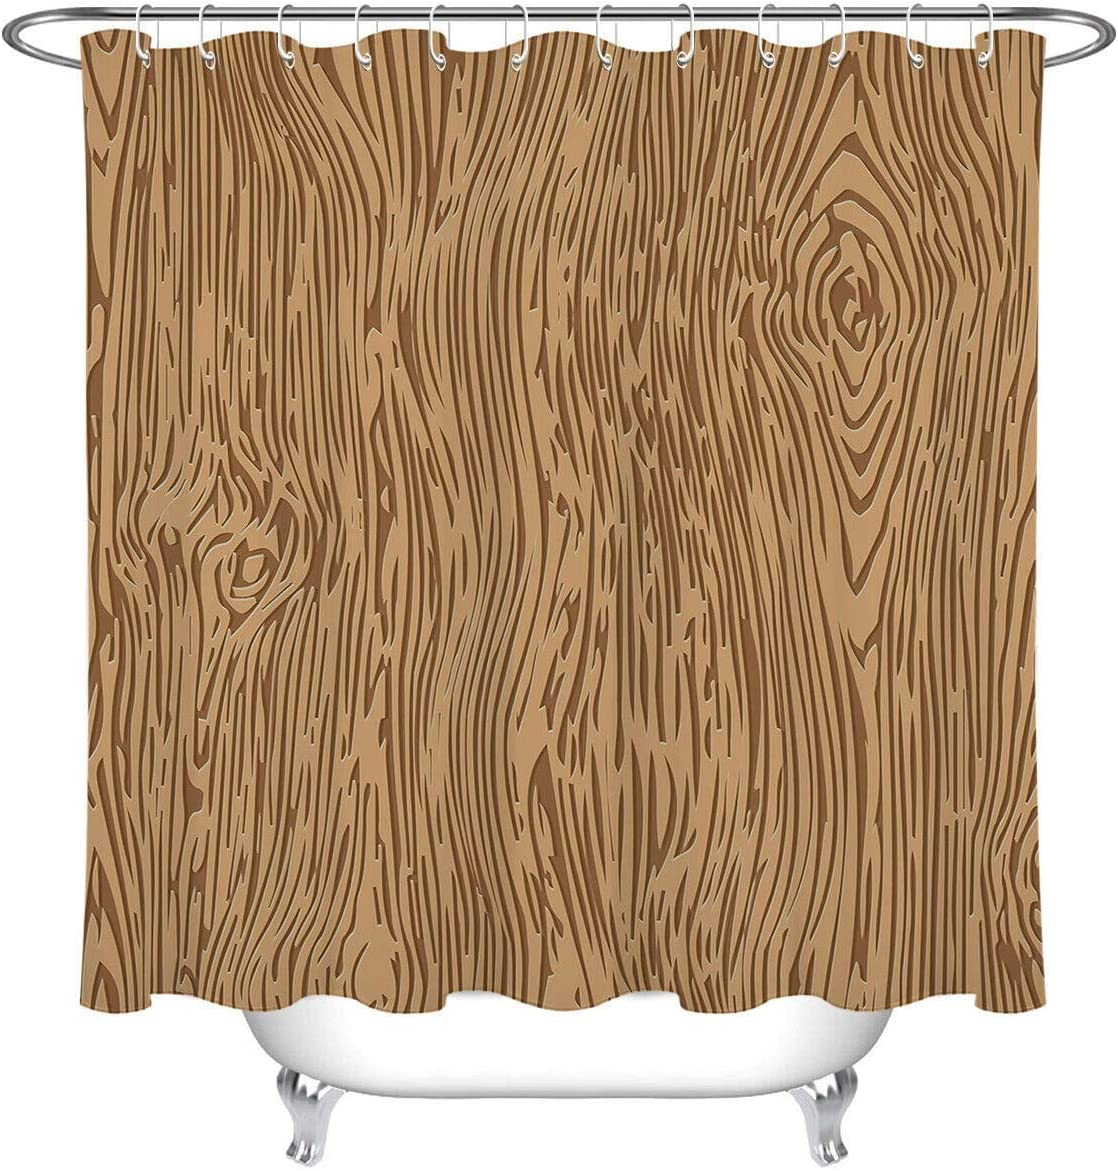 WGEMXC Curtain Bathroom lowest price Abstract Wood 40% OFF Cheap Sale Texture B